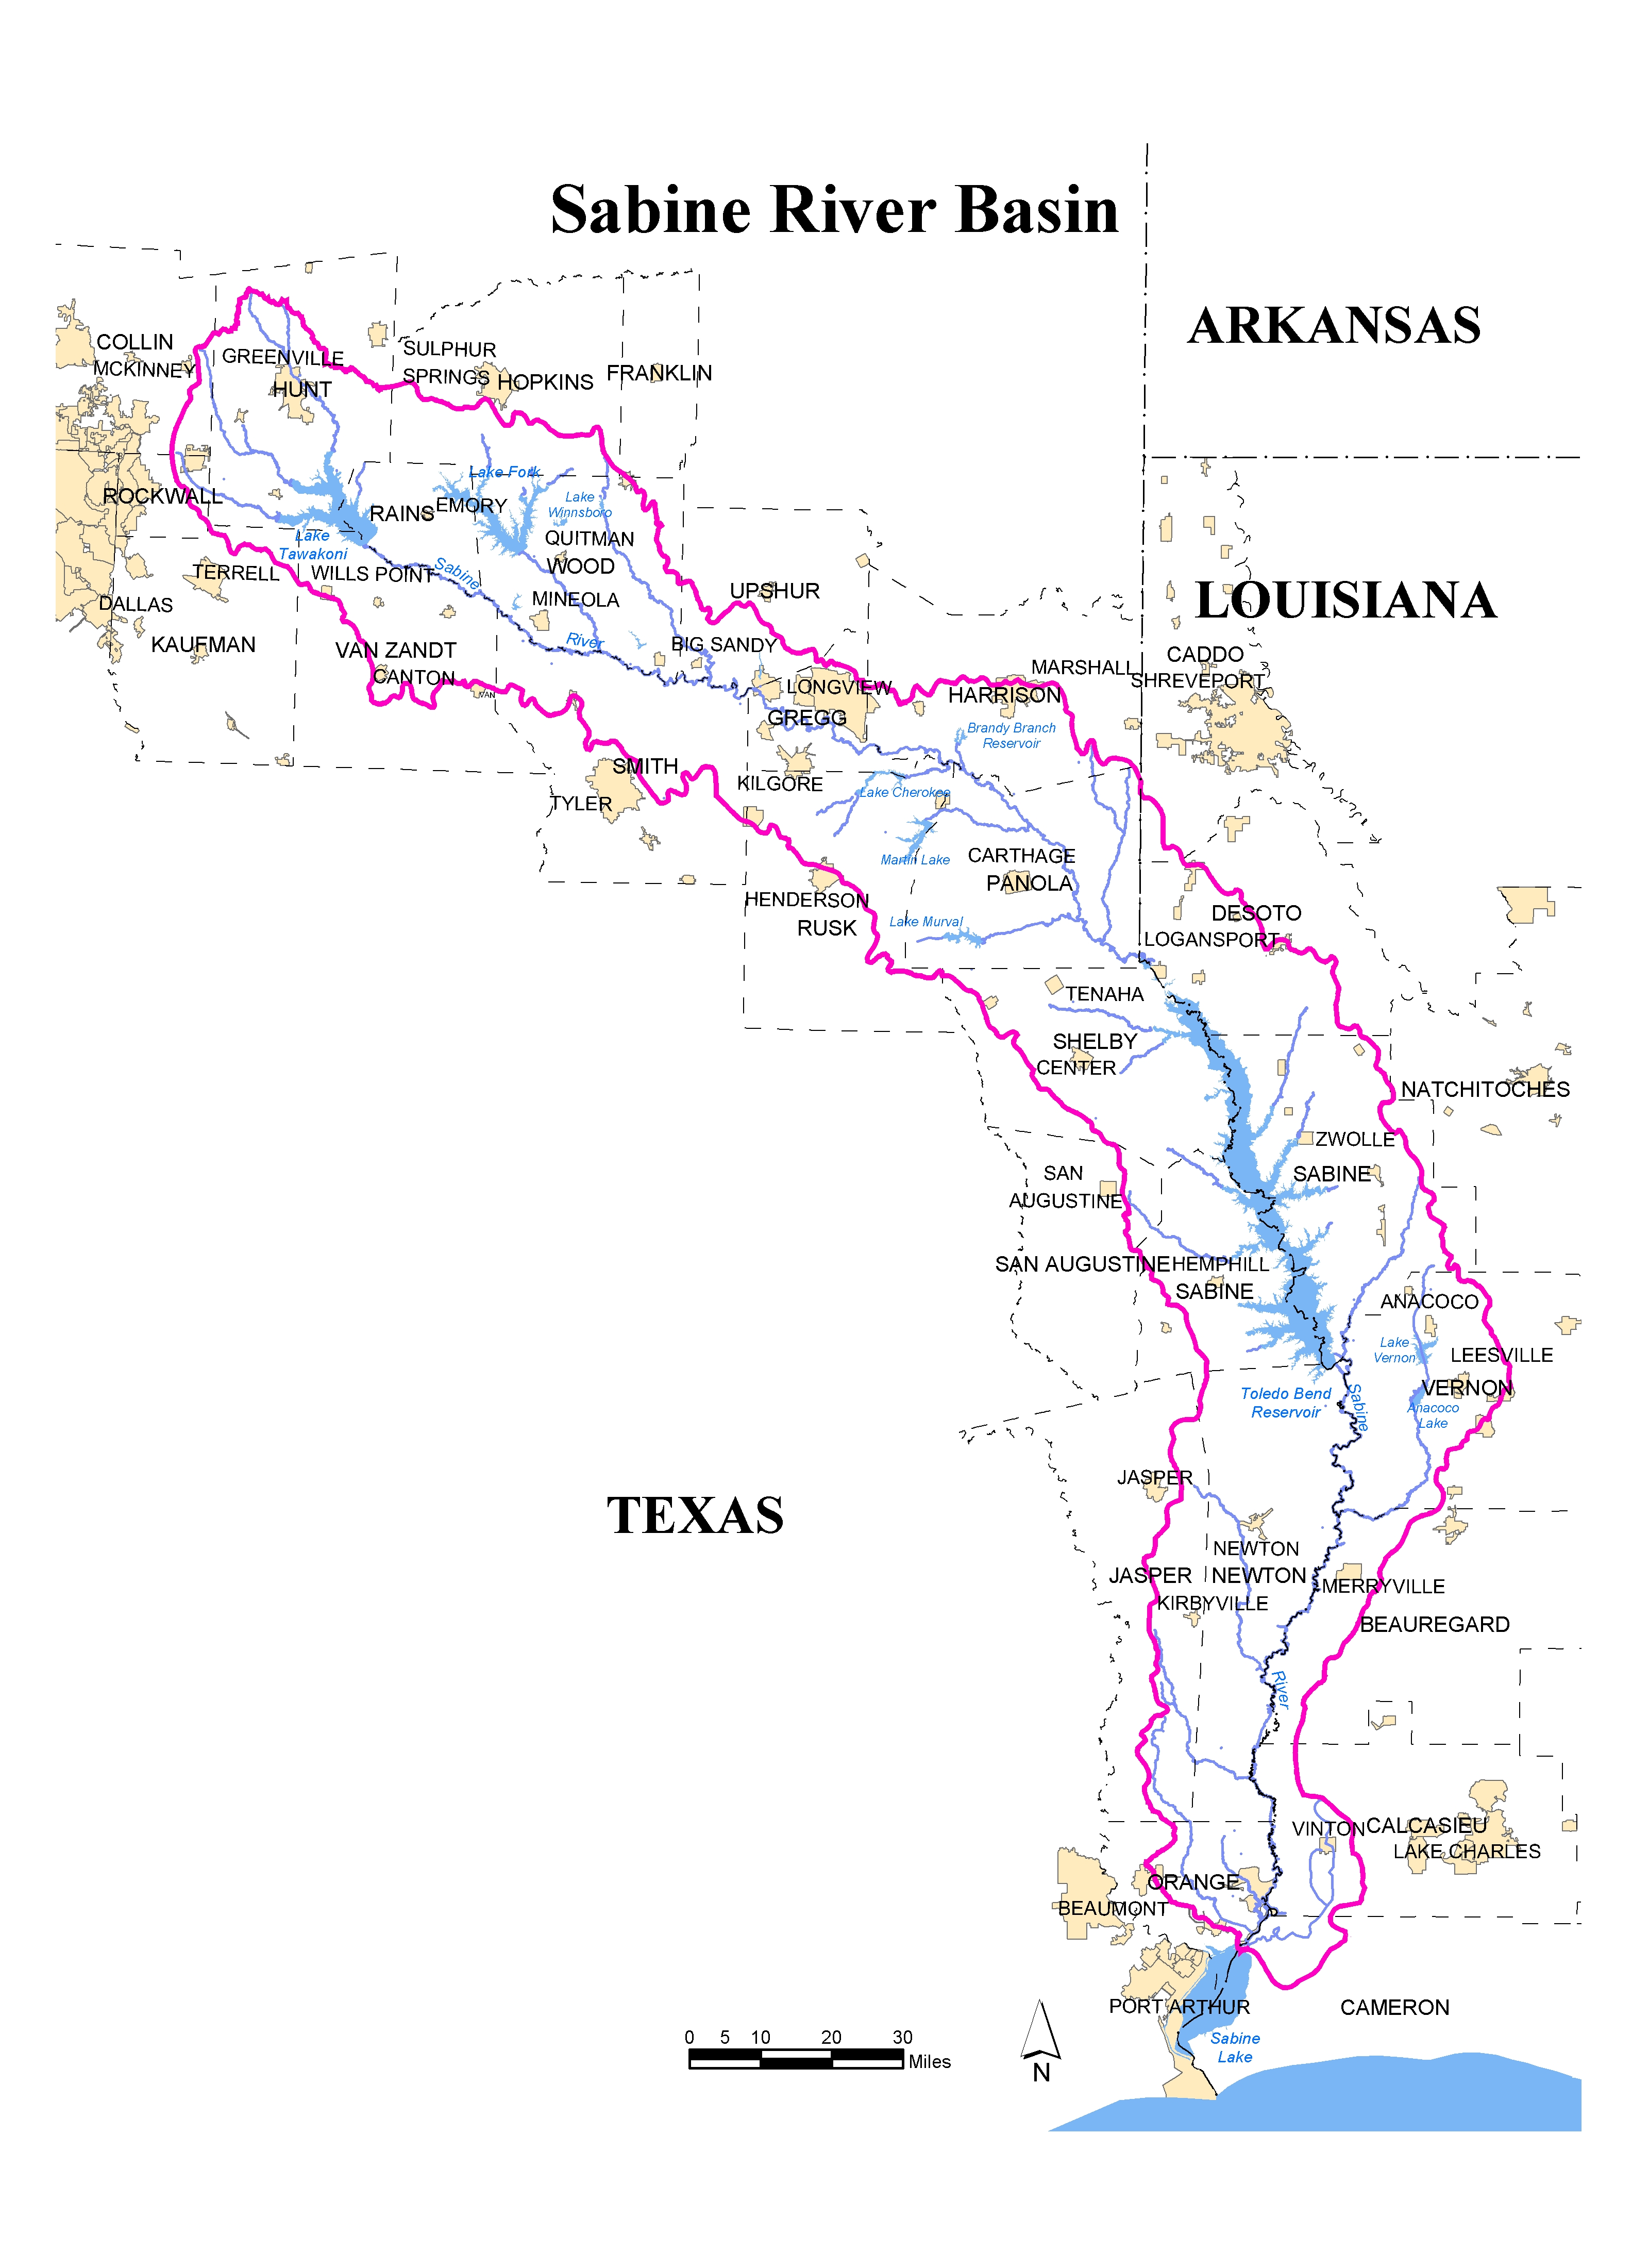 Map of the Sabine River Basin